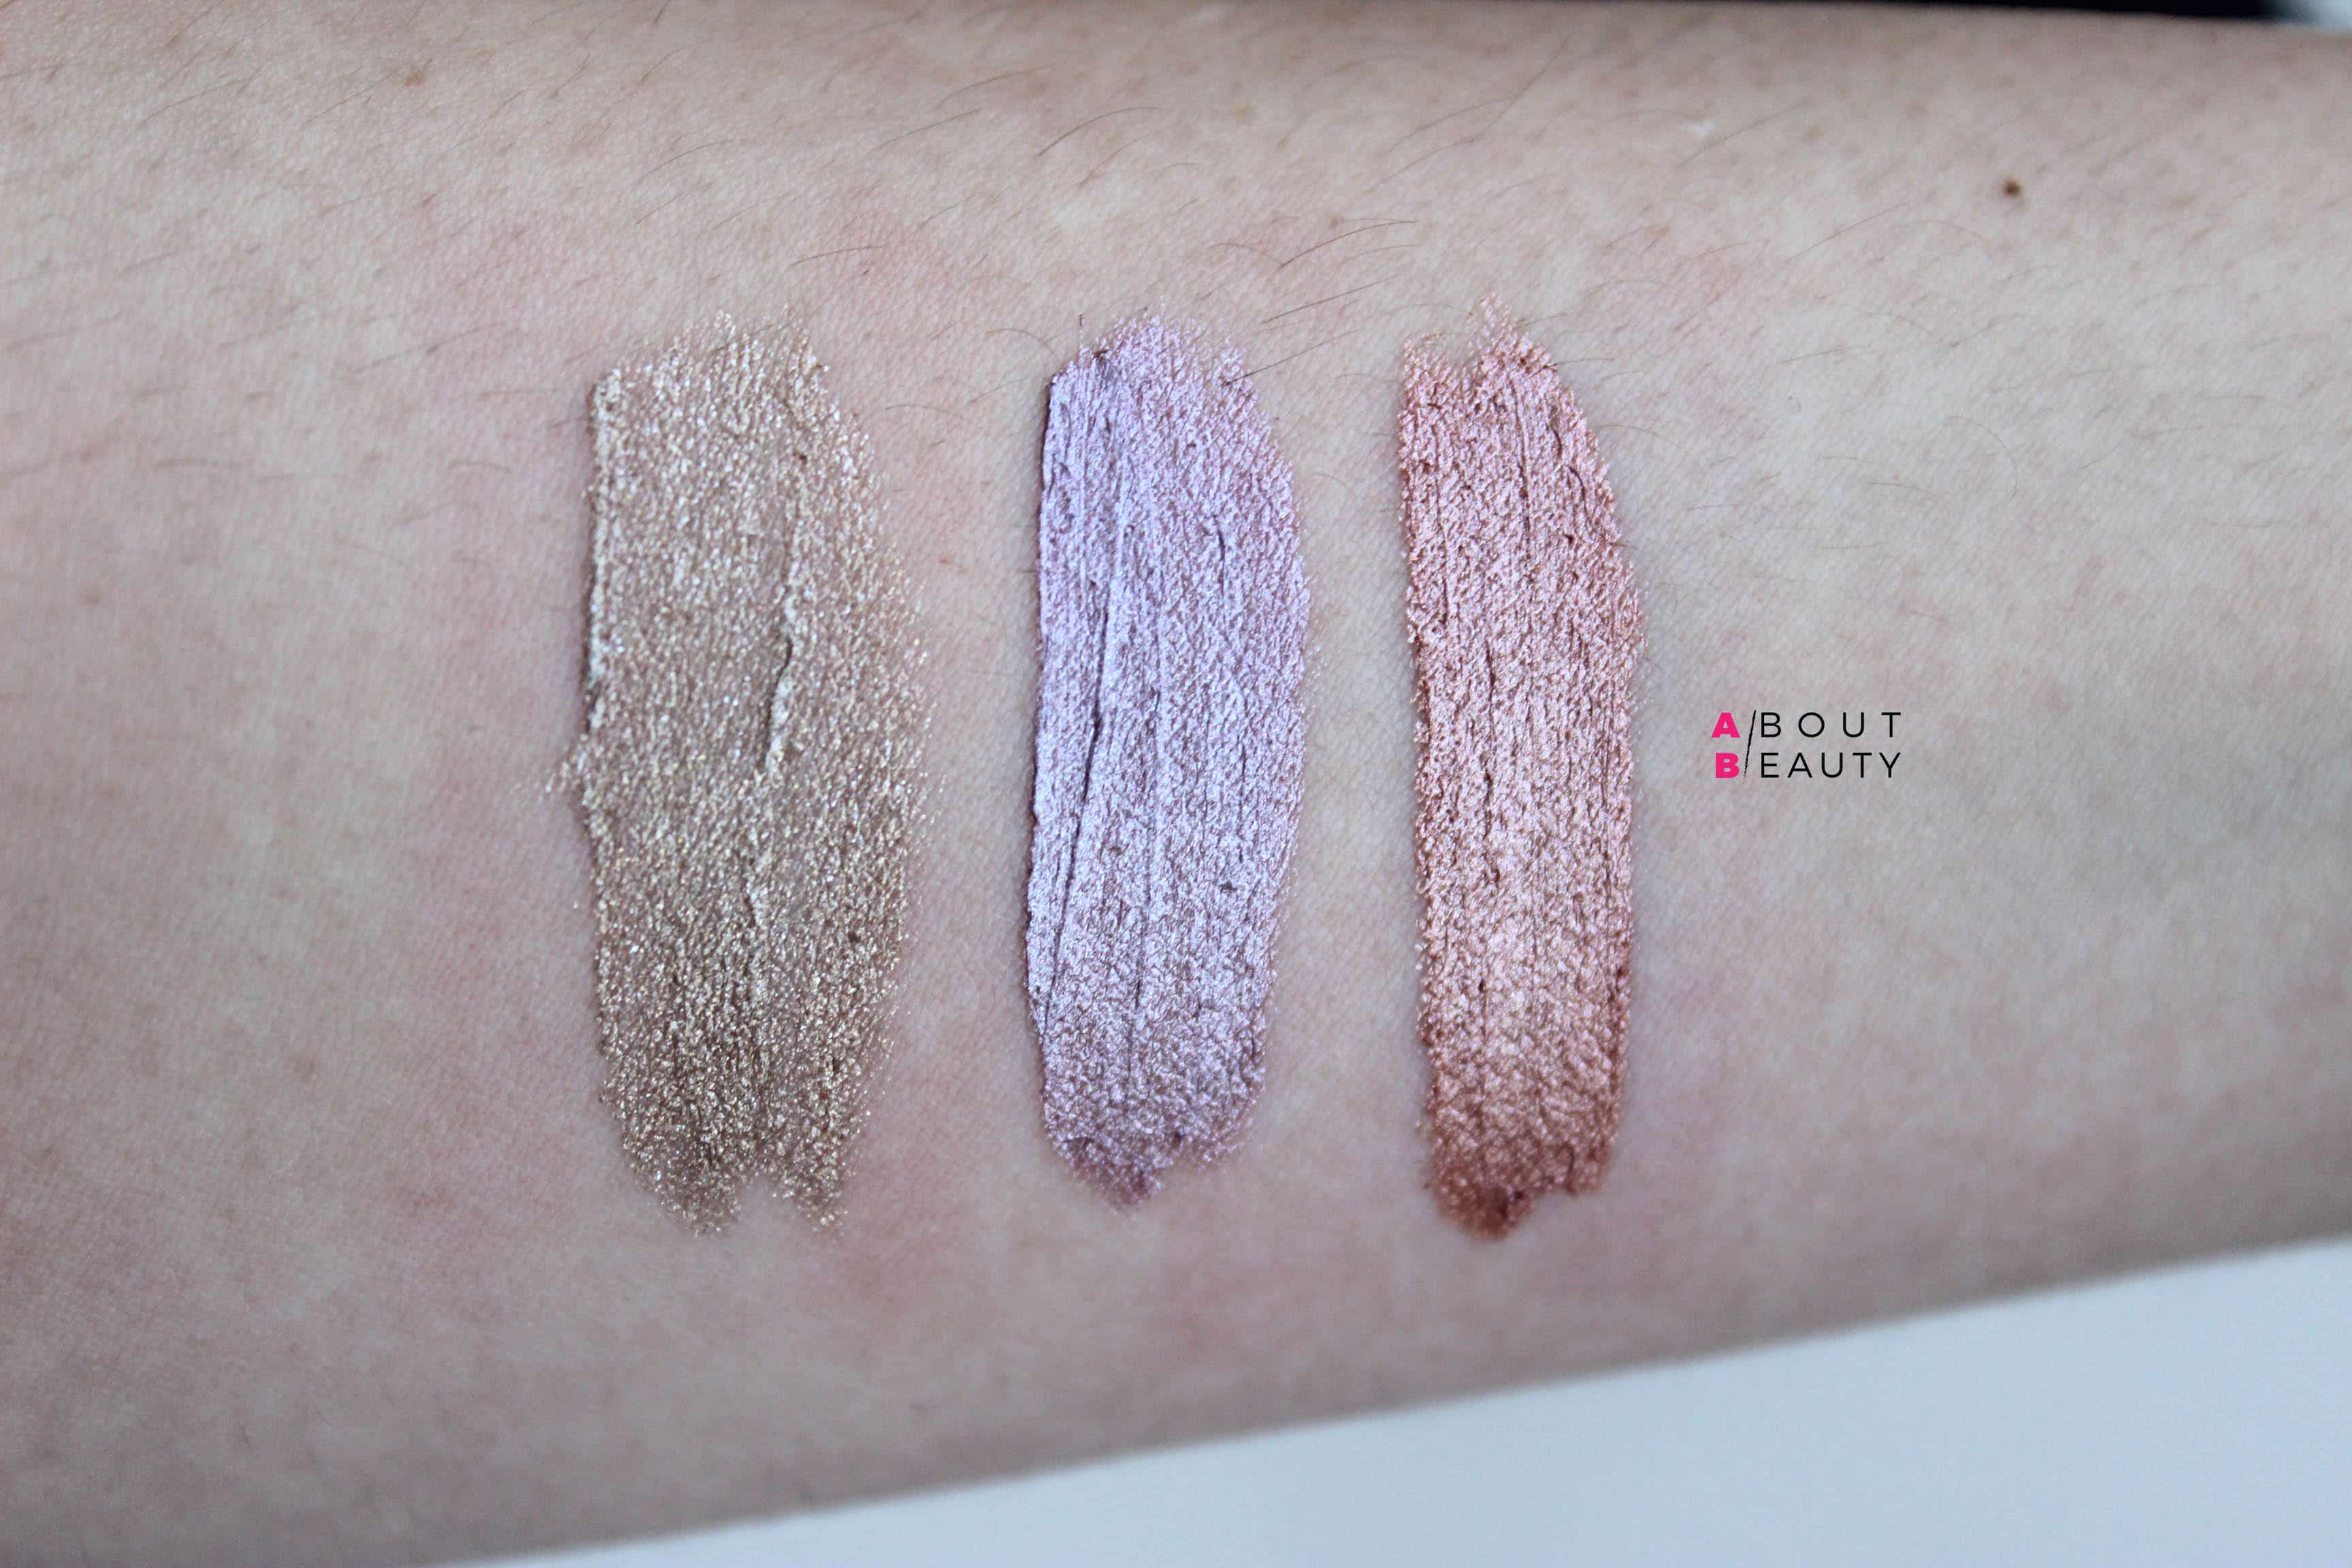 Kiotis Ombretti in crema - Swatches